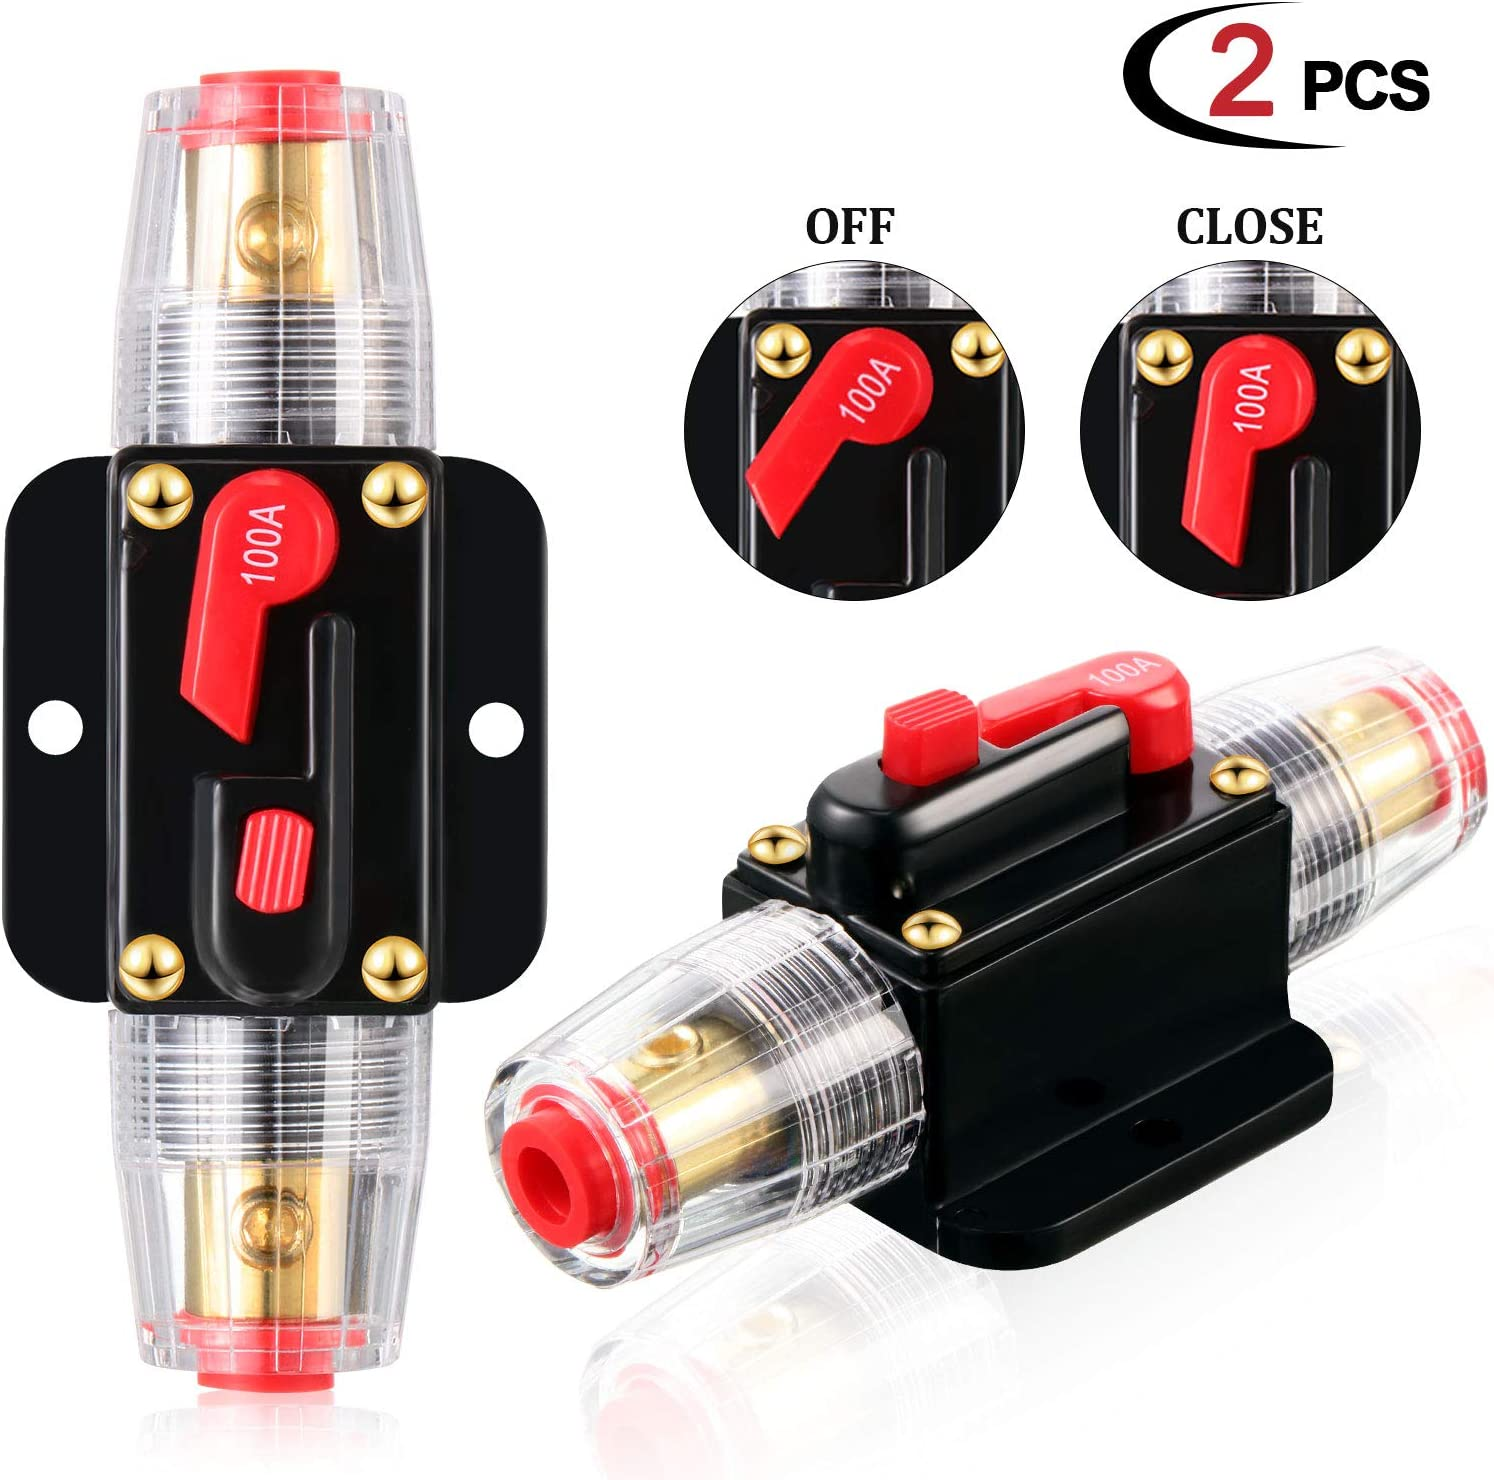 2 Pieces Audio Inline Circuit Breaker 100A Waterproof Auto Car Protection Stereo Switch Fuse Holder 12V-24V DC Manual Reset Fuse Holder for Automotive Marine Boat Audio System Overload Protection